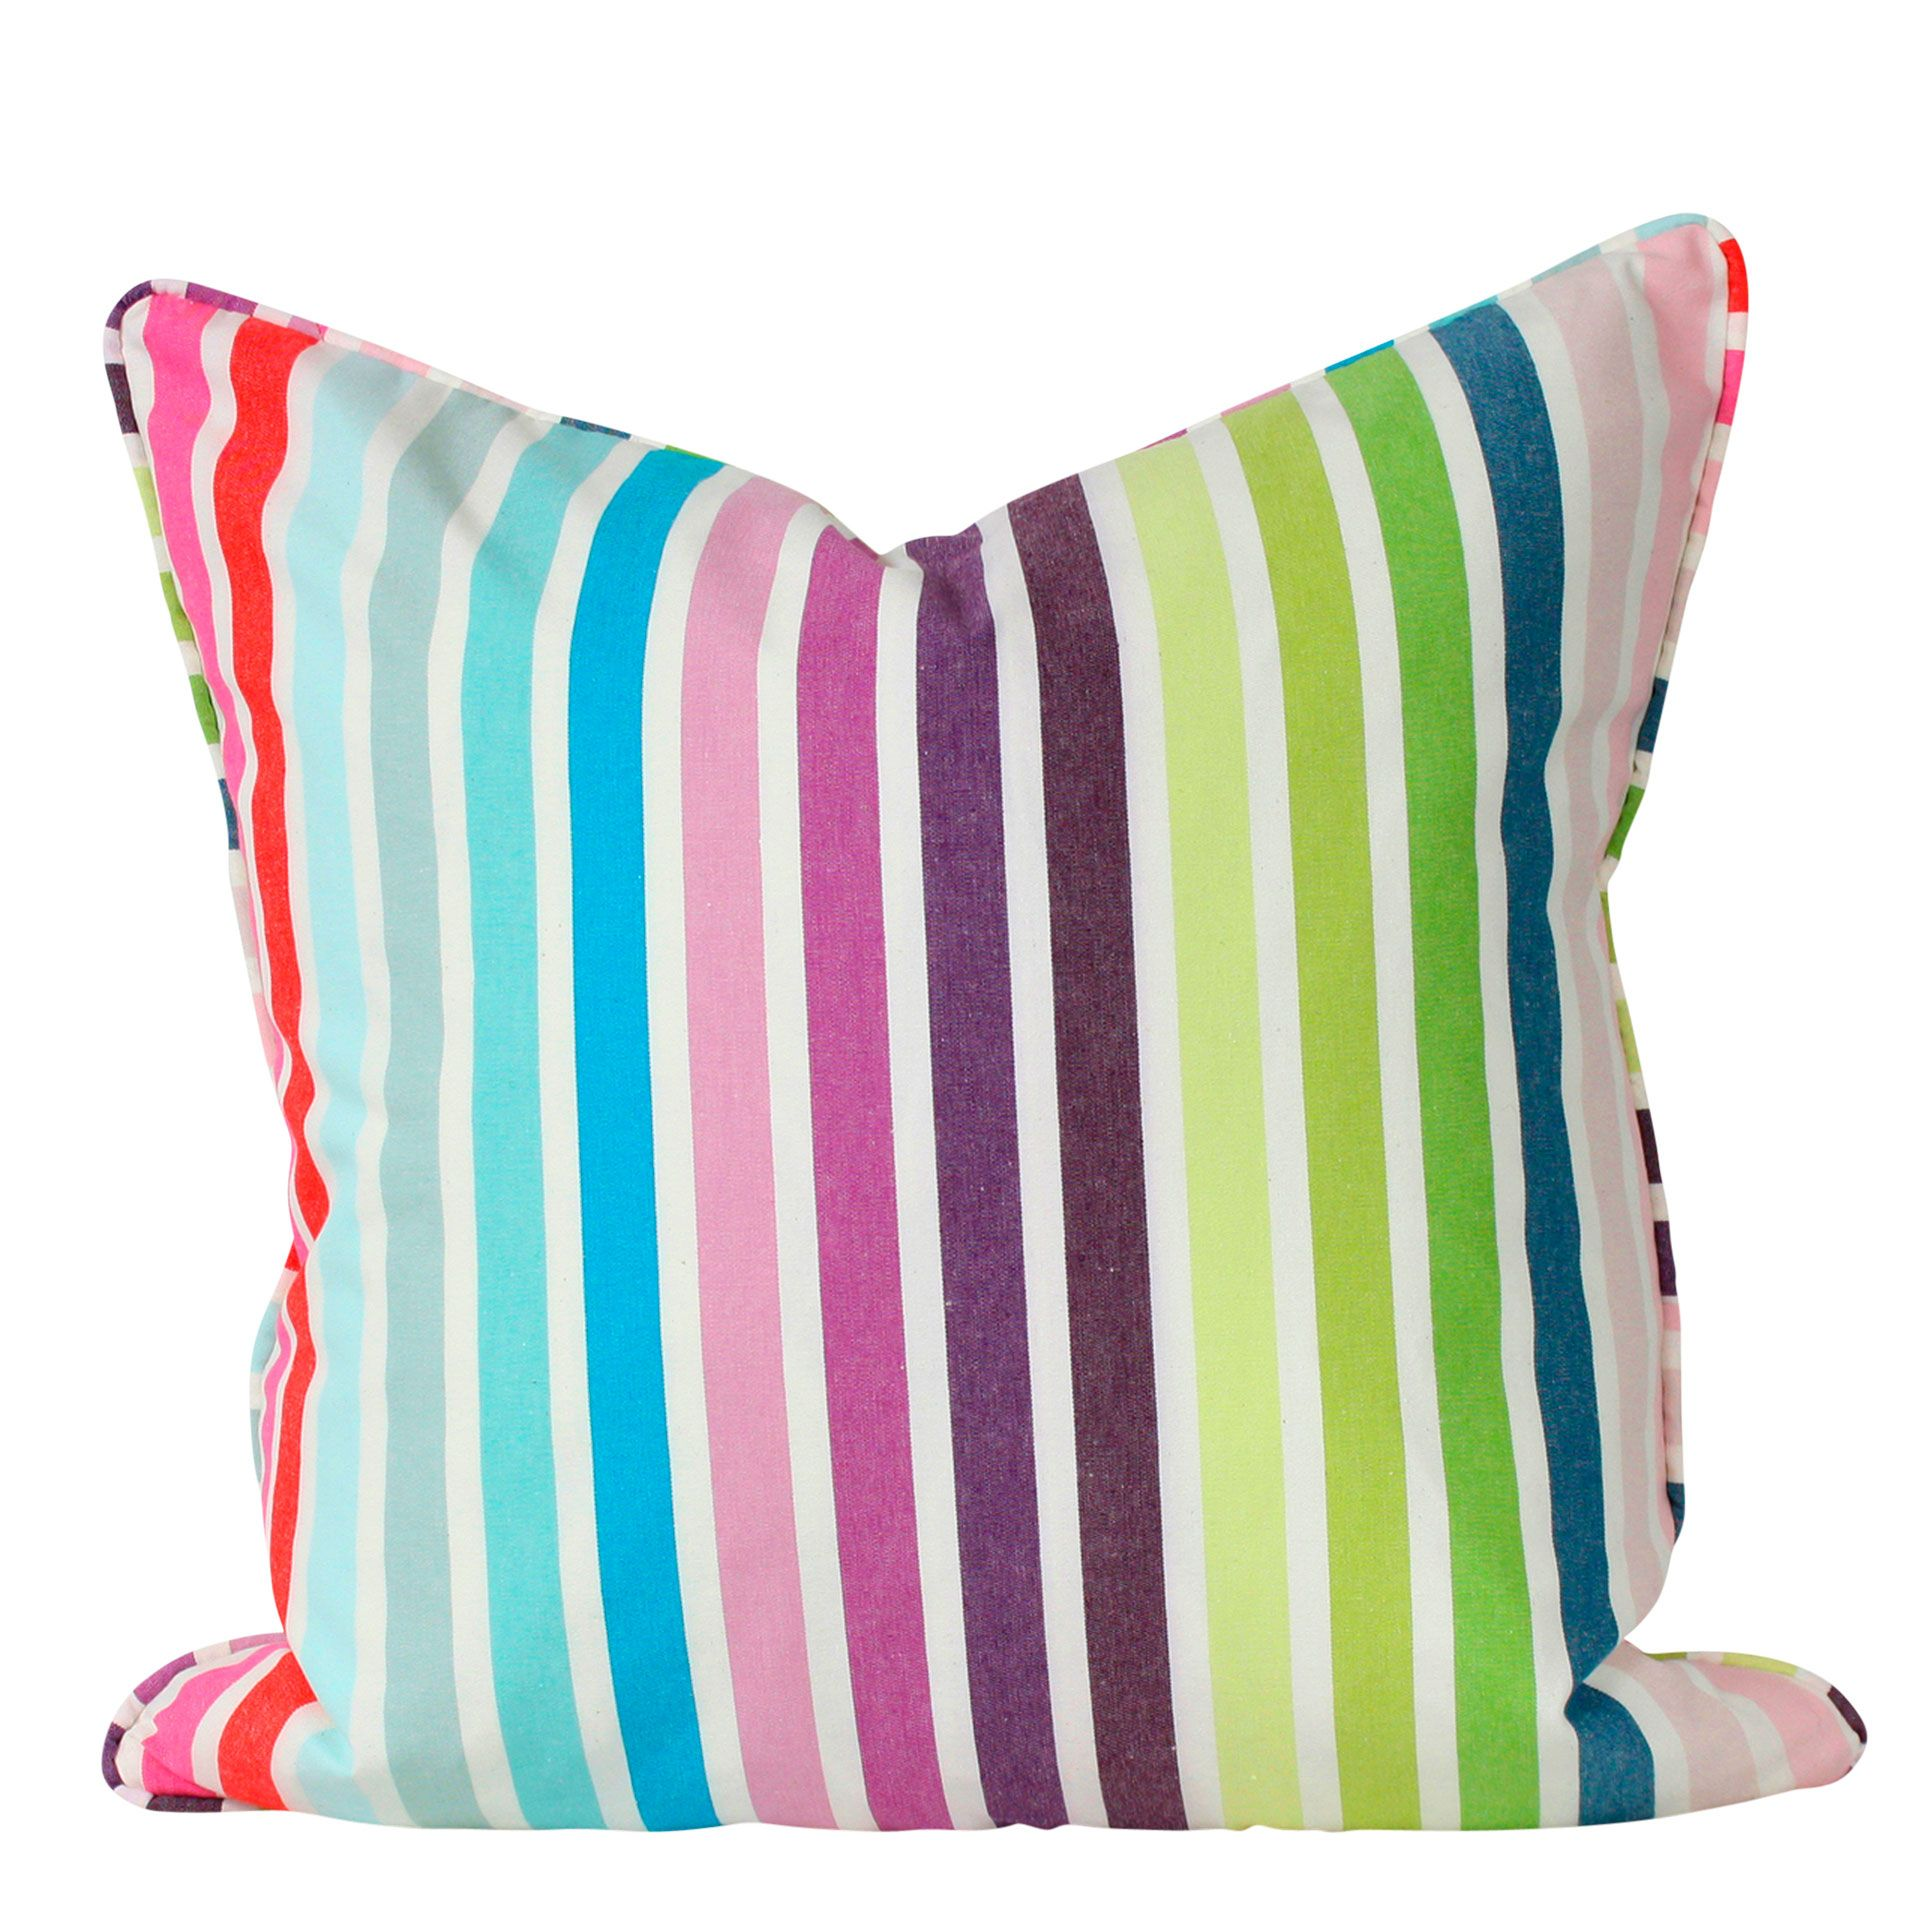 Delightful ... Home  All Under $100. This Explosion Of Brights Will Transform Your  Digs Without Eating Up Your Savings. Nice Look